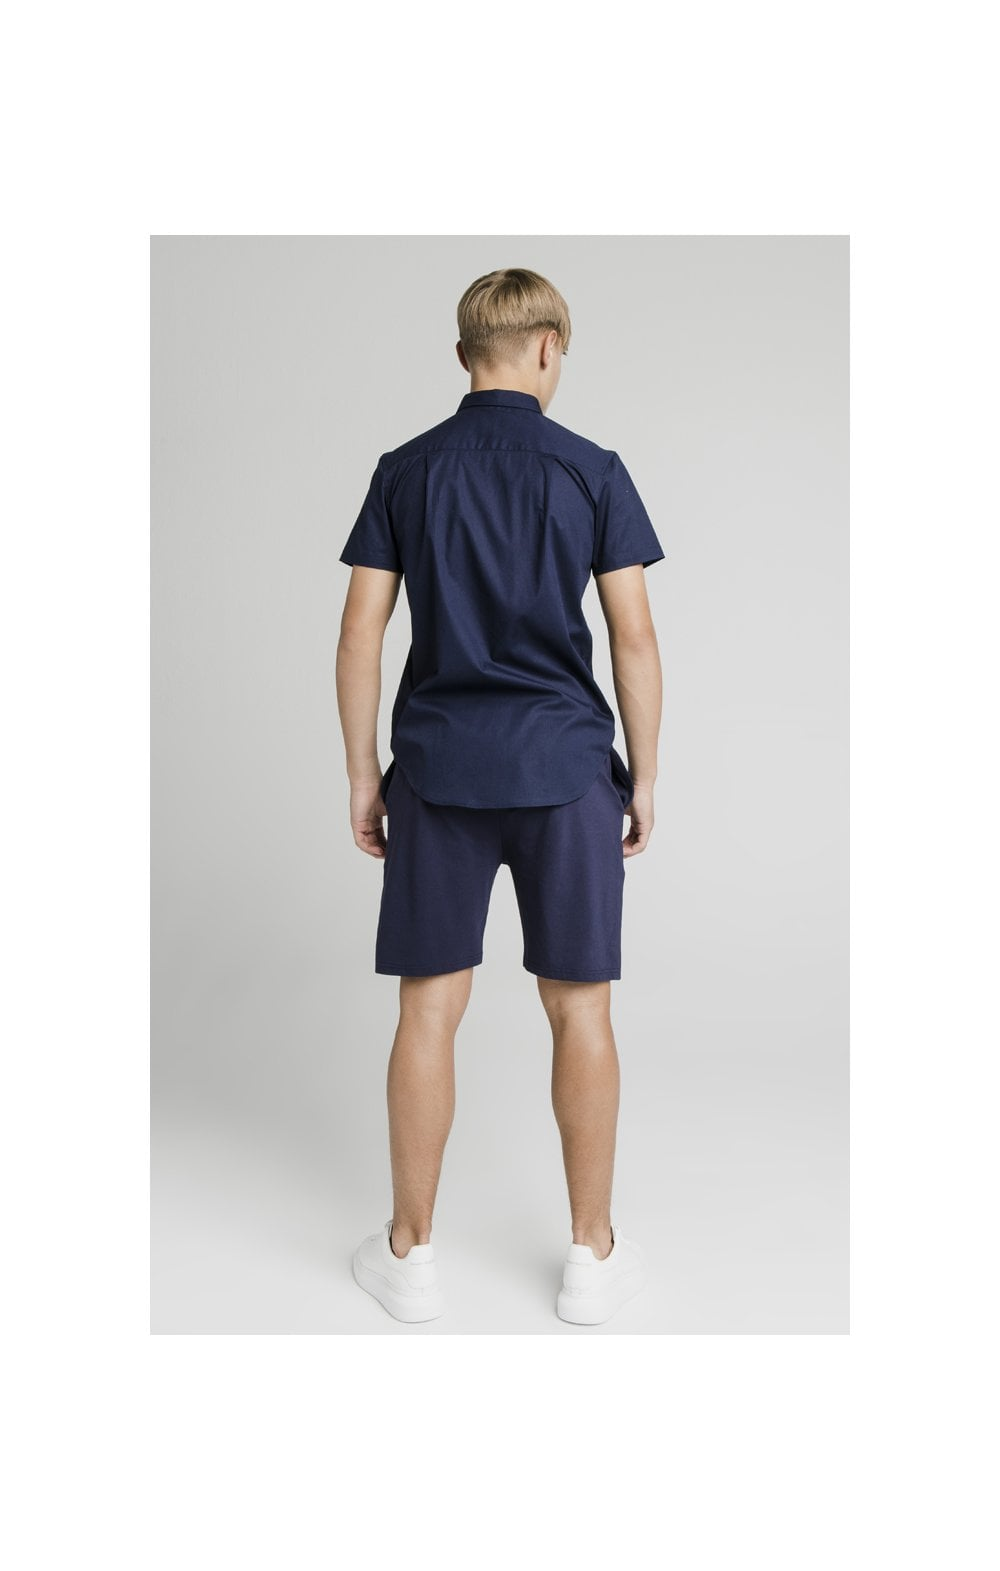 Load image into Gallery viewer, Illusive London Side Tape Jersey Shorts - Navy (7)